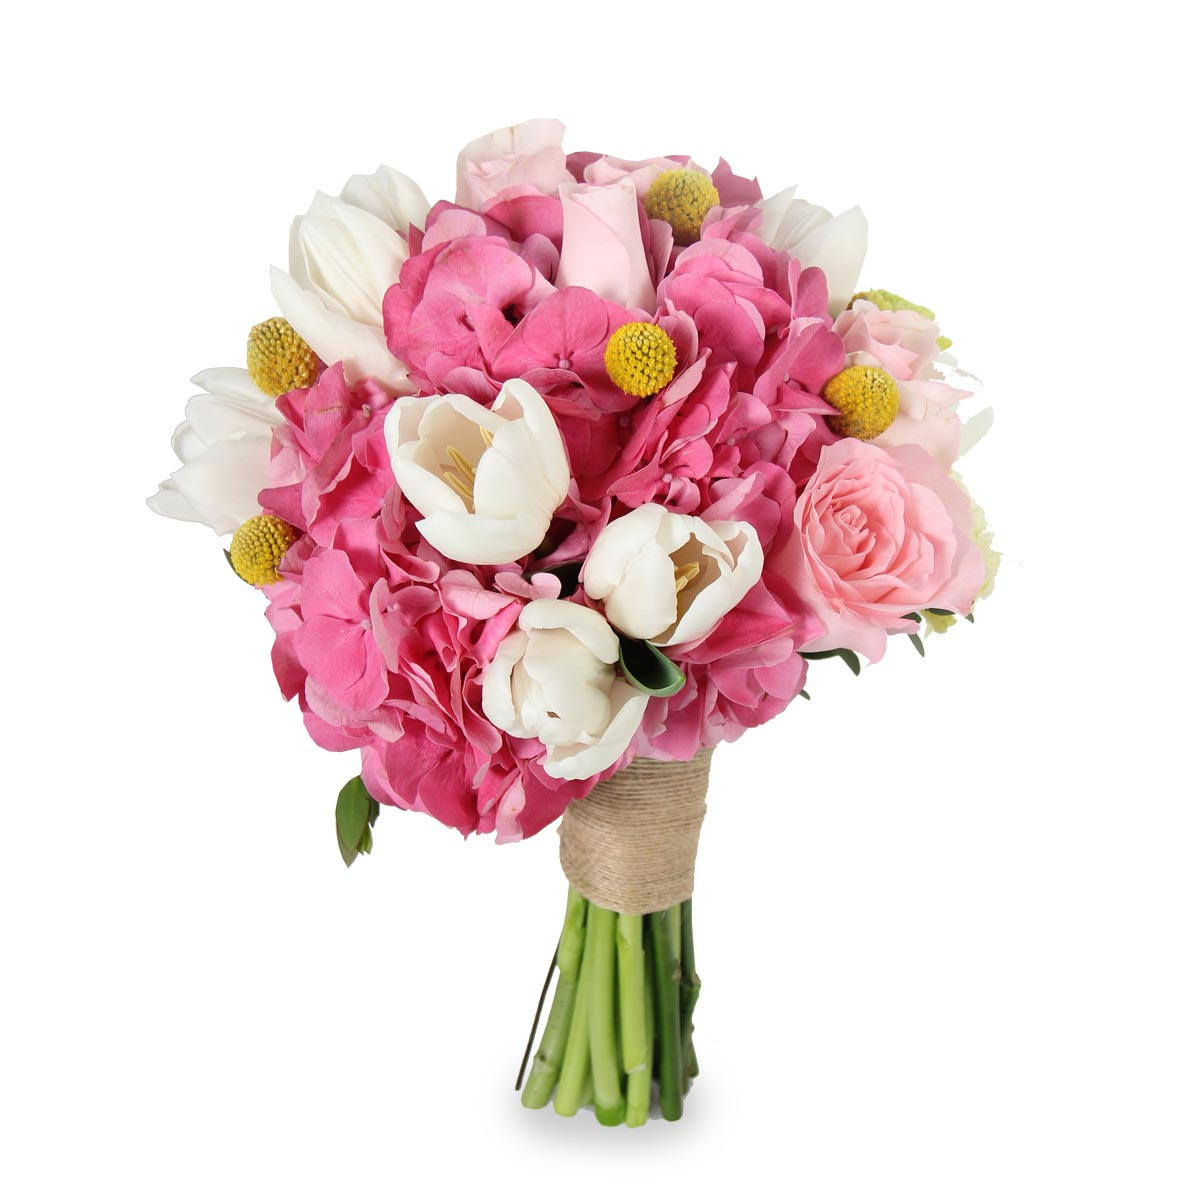 WB1613 pink hydrangea and tulips bridal bouquet